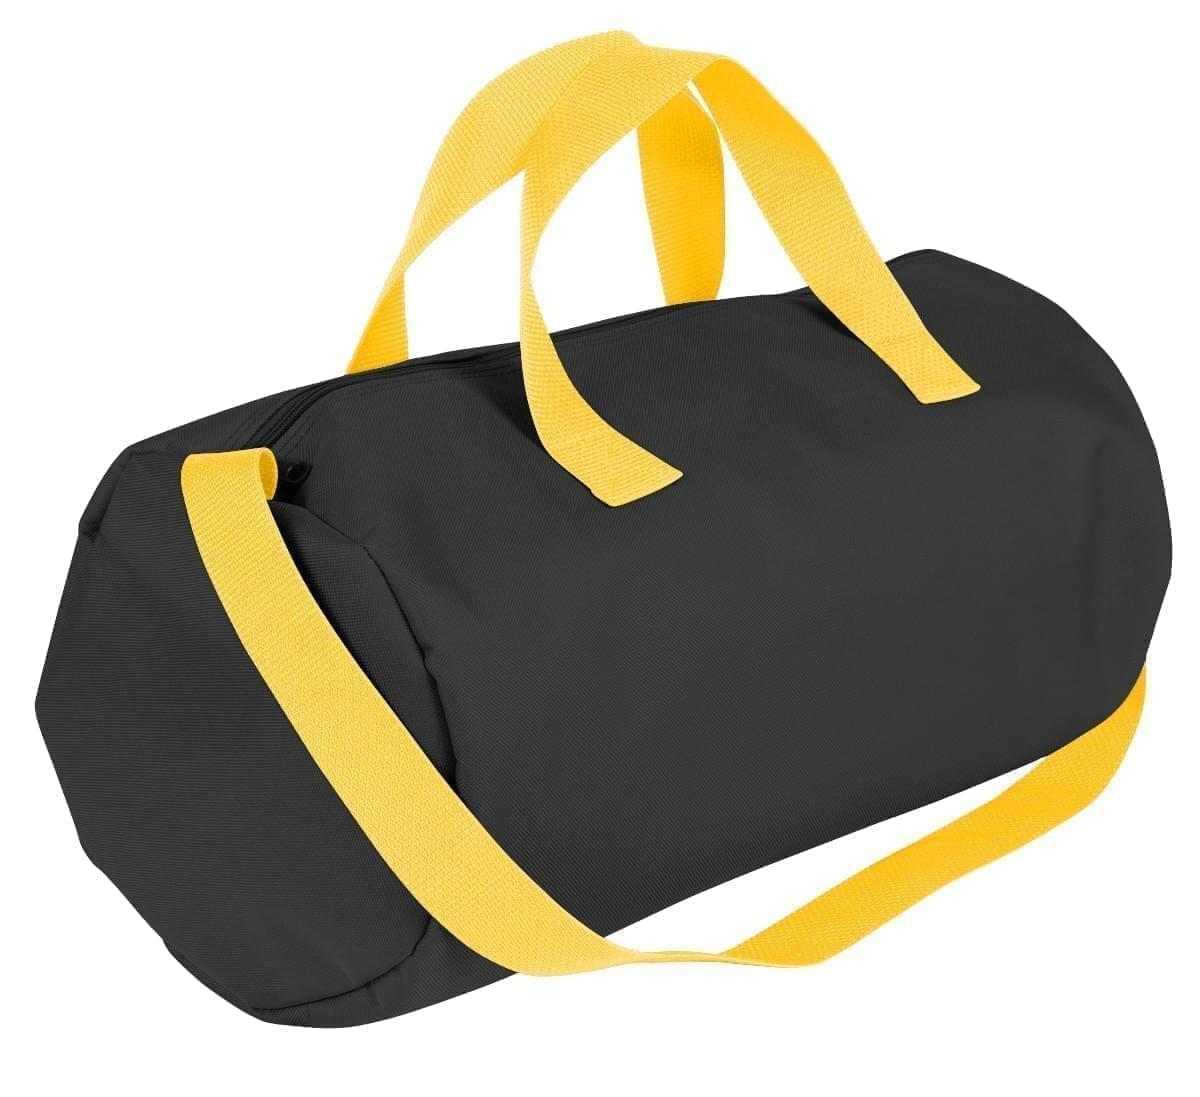 USA Made Nylon Poly Gym Roll Bags, Black-Gold, ROCX31AAO5